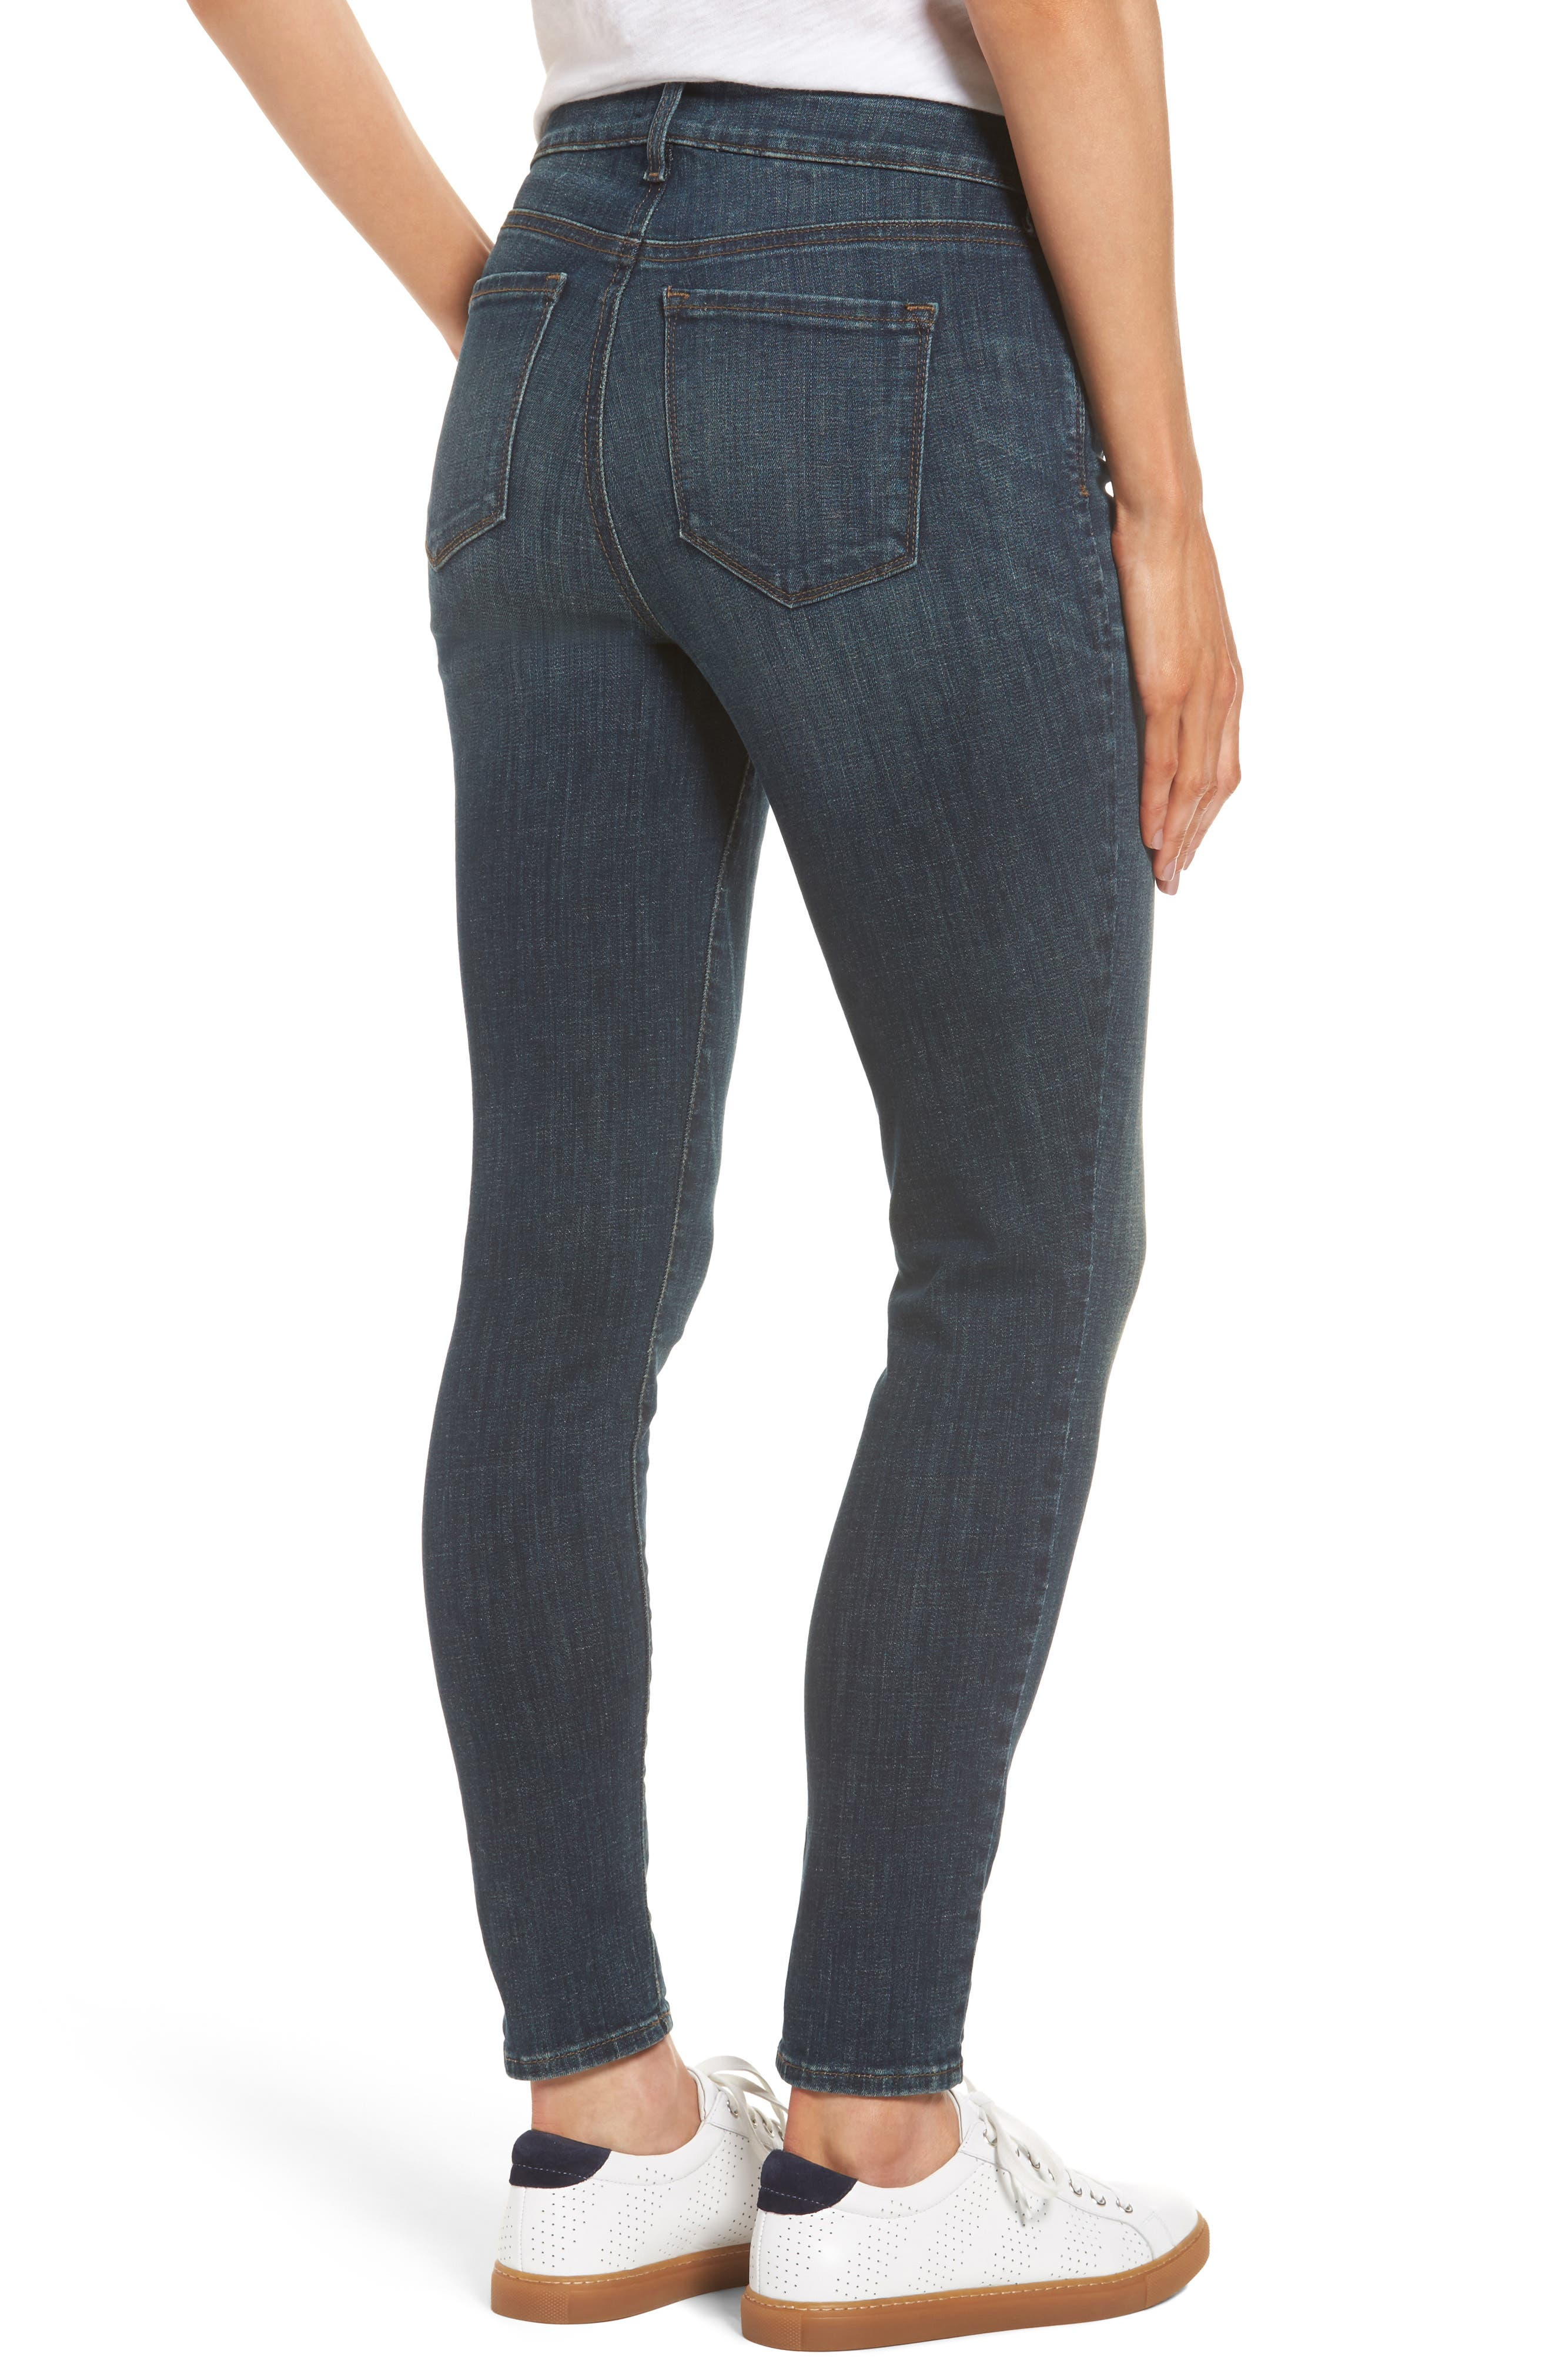 Ami Stretch Skinny Jeans,                             Alternate thumbnail 2, color,                             420